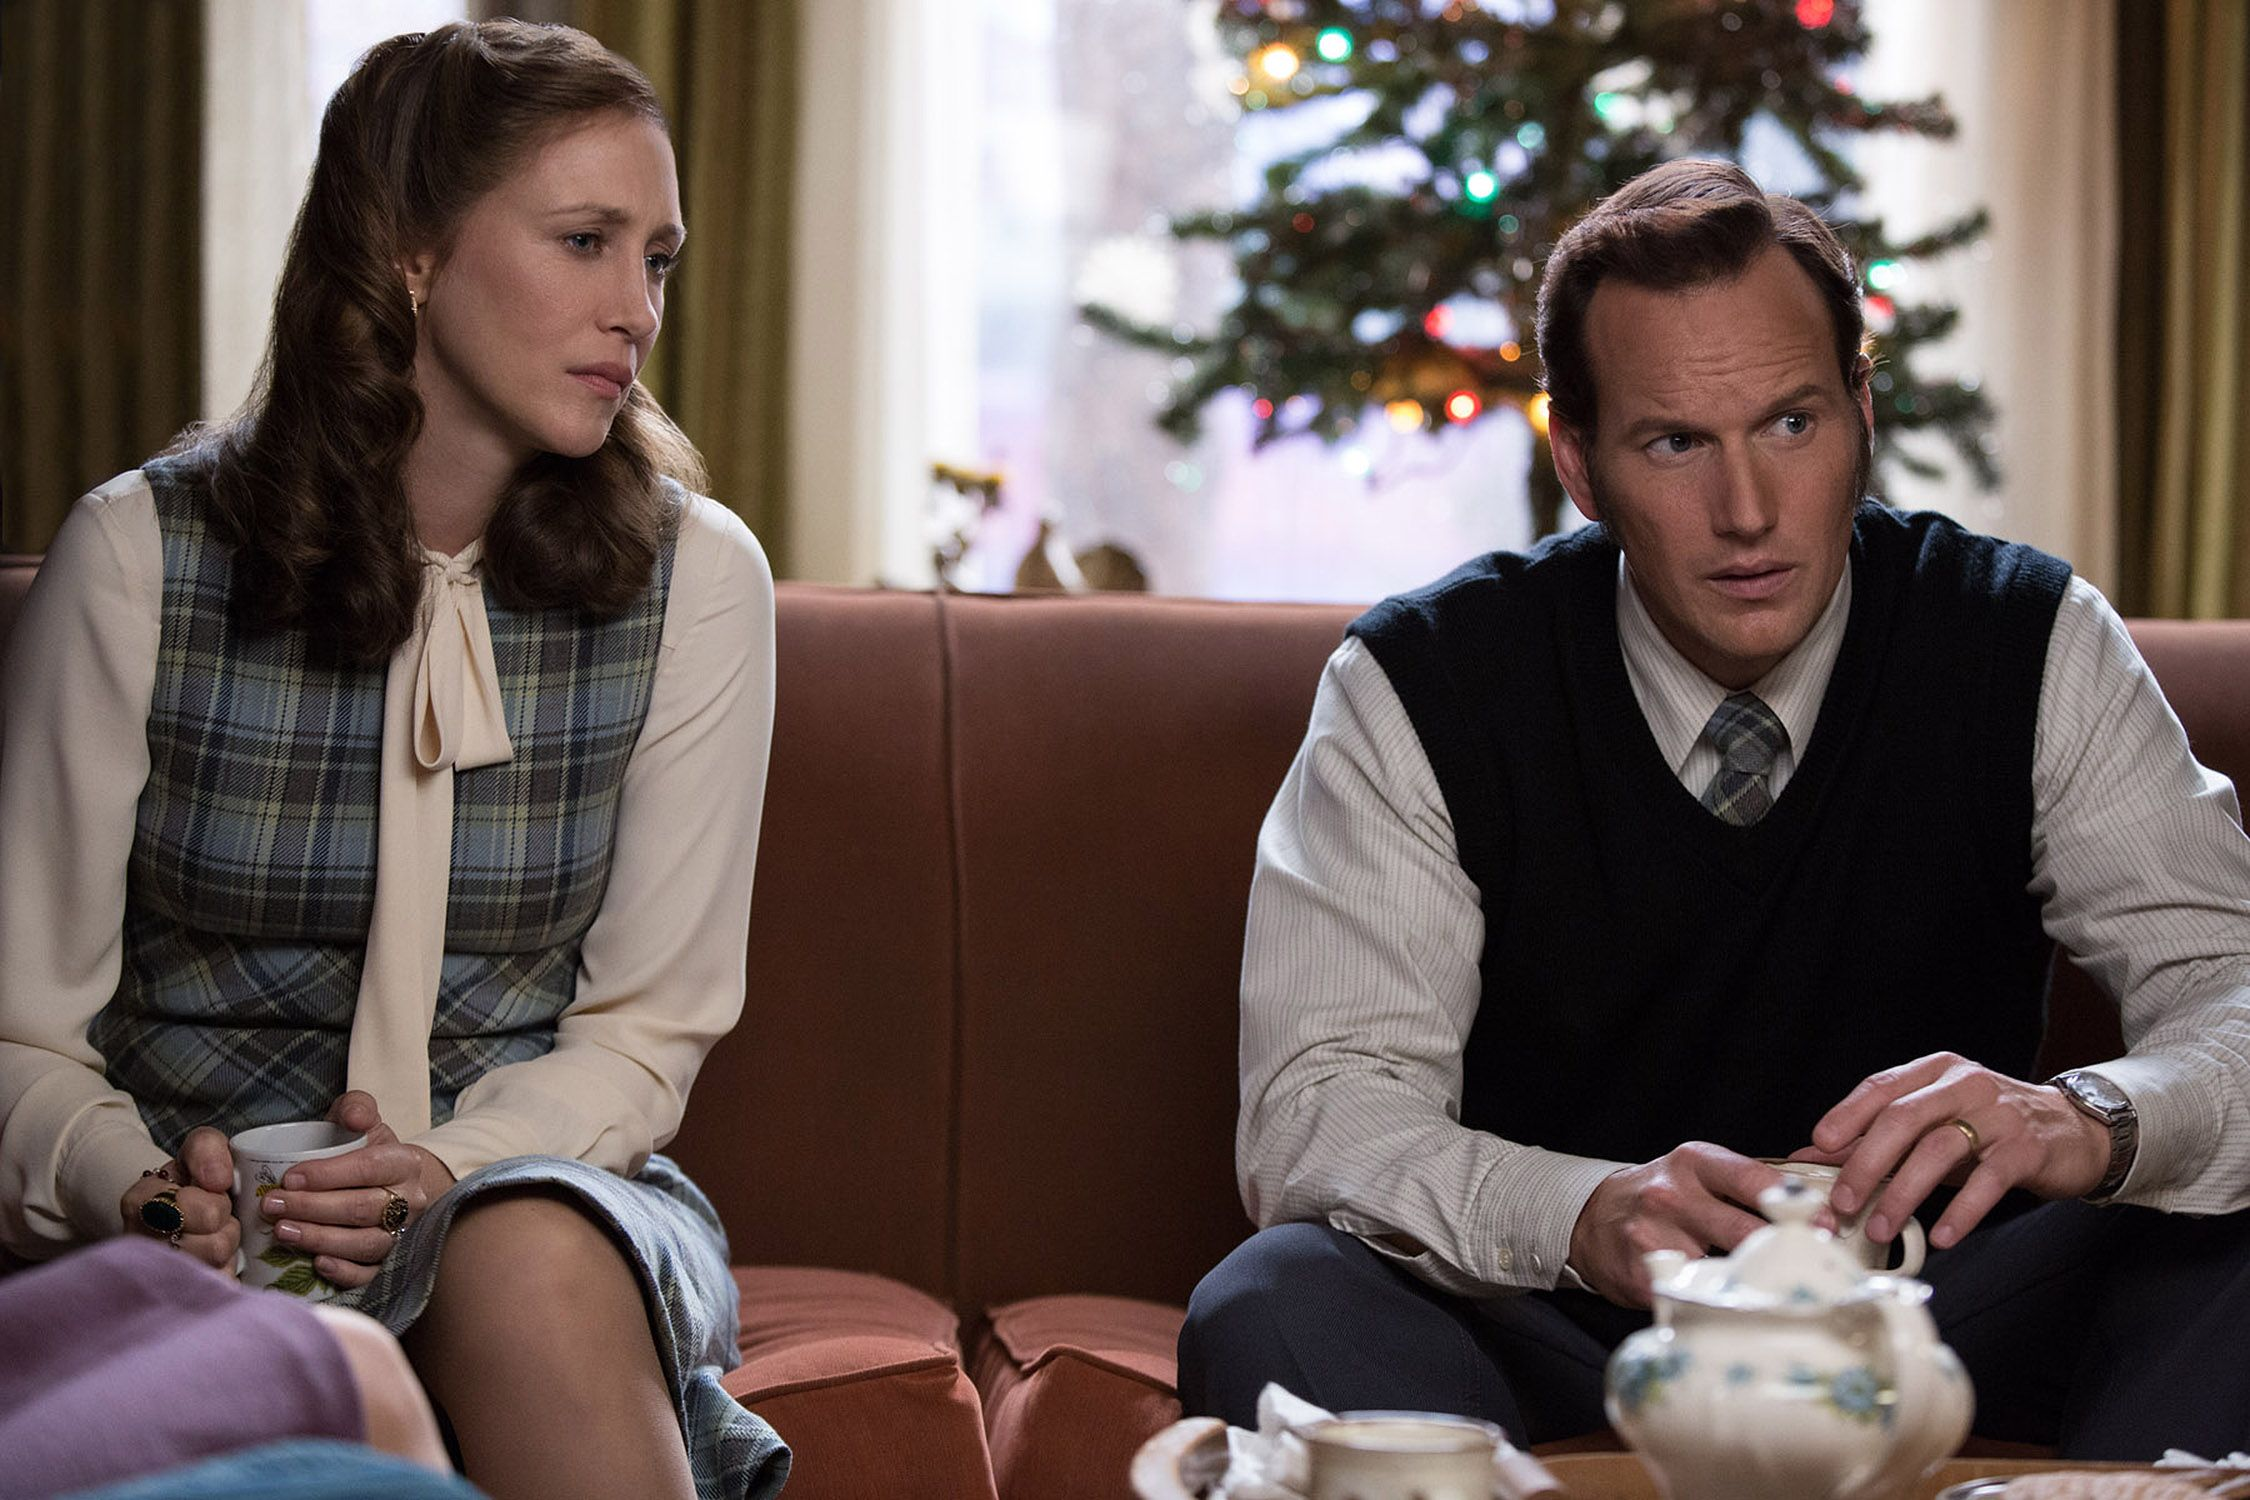 'The Conjuring 2': 13 Things to Know About James Wan's Horror Sequel